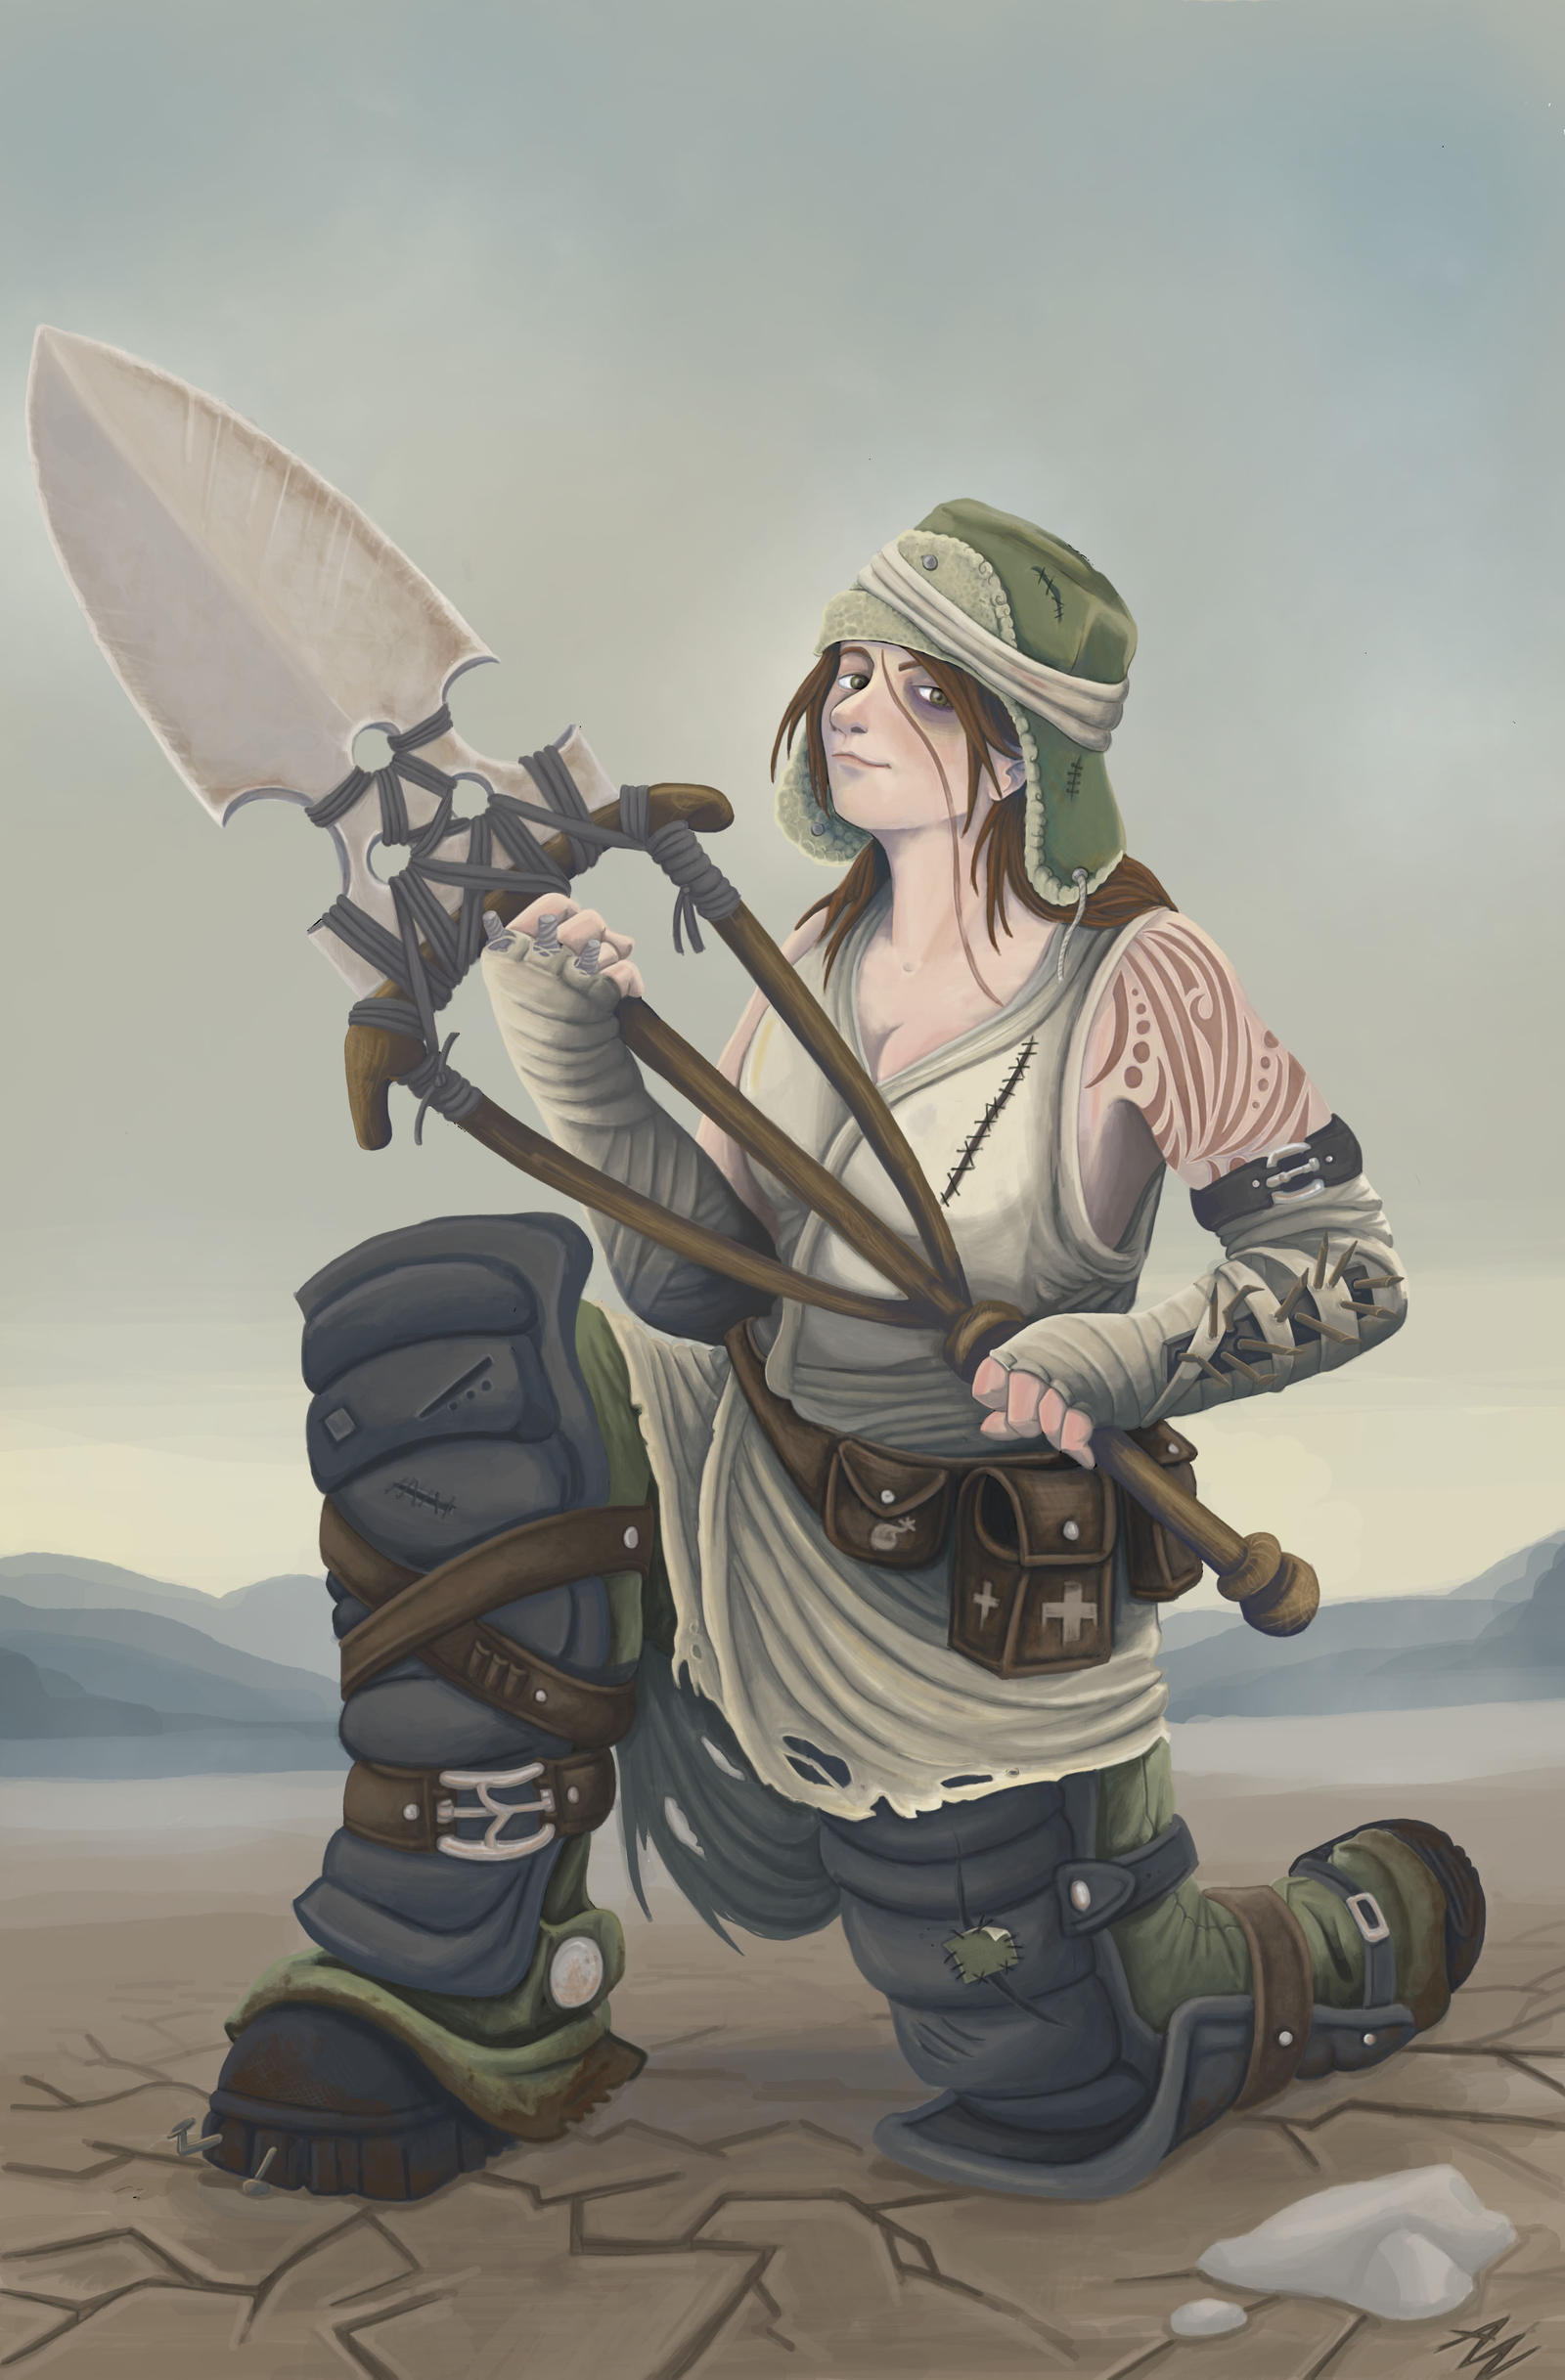 Wasteland traveler by Adele-Waldrom